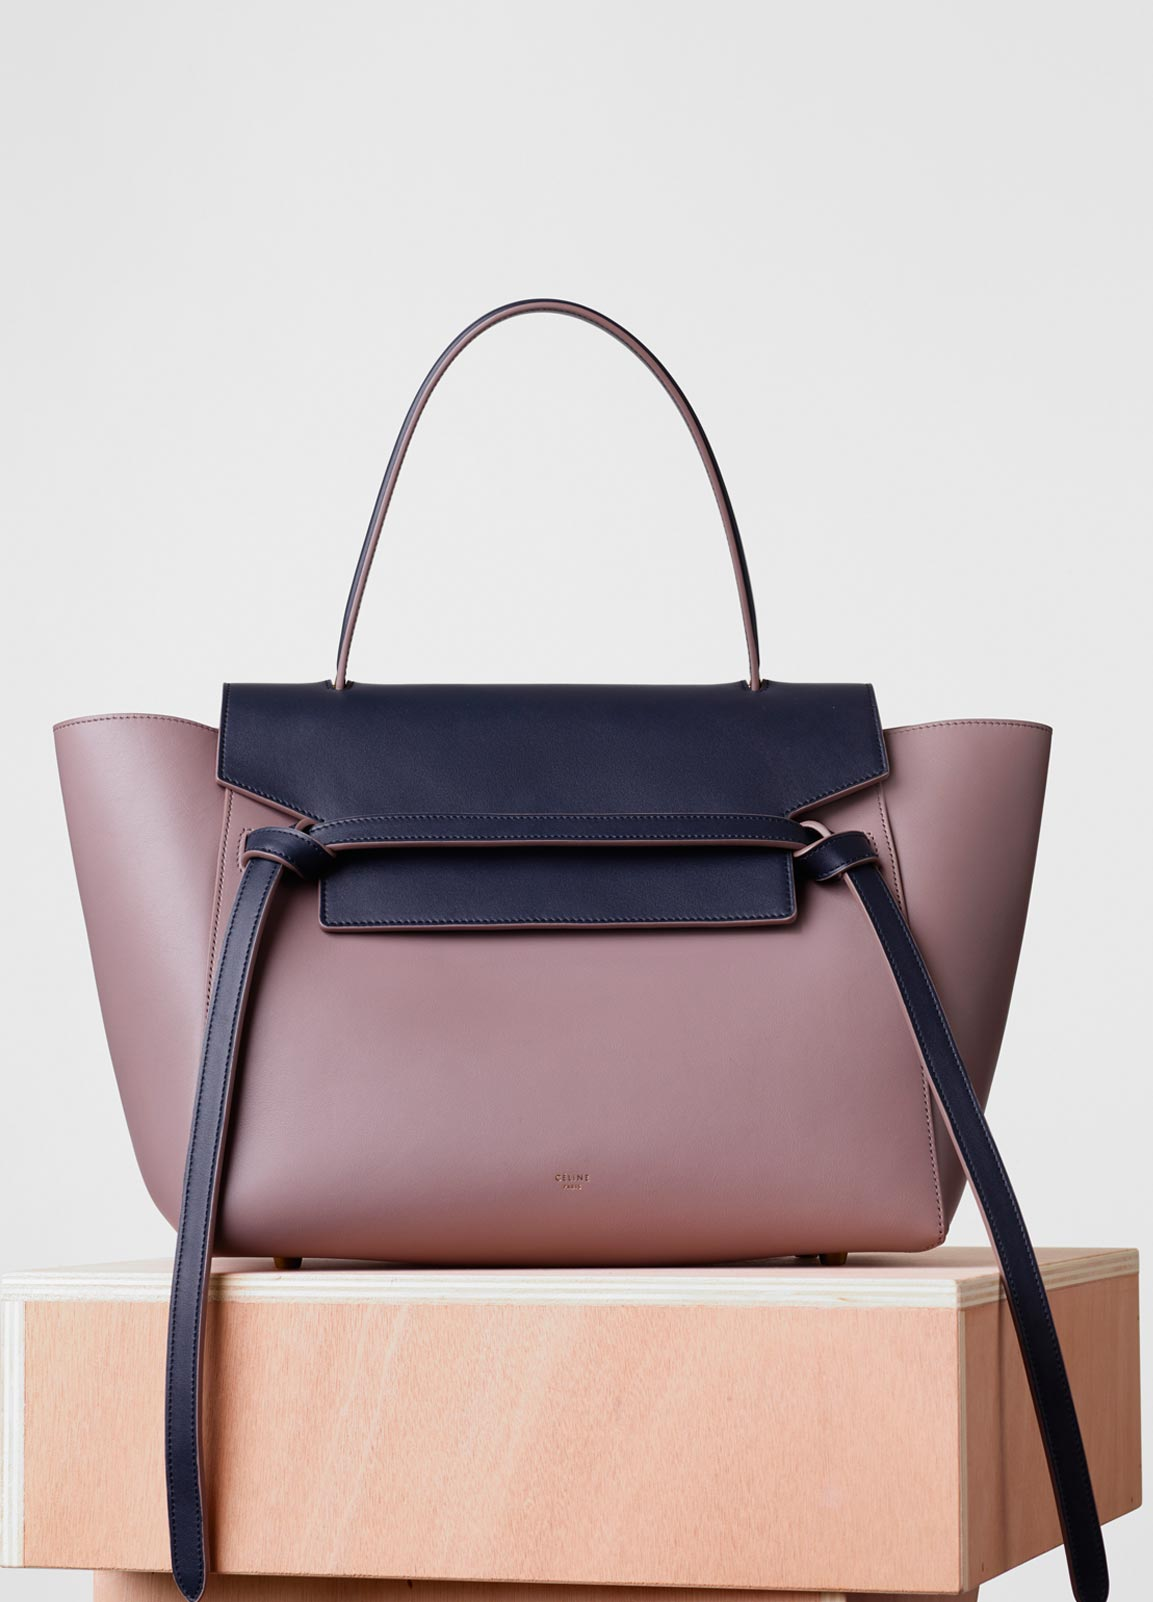 3abd4b08be83 Celine Winter 2015 Bag Collection Featuring Subtropical Shades and ...